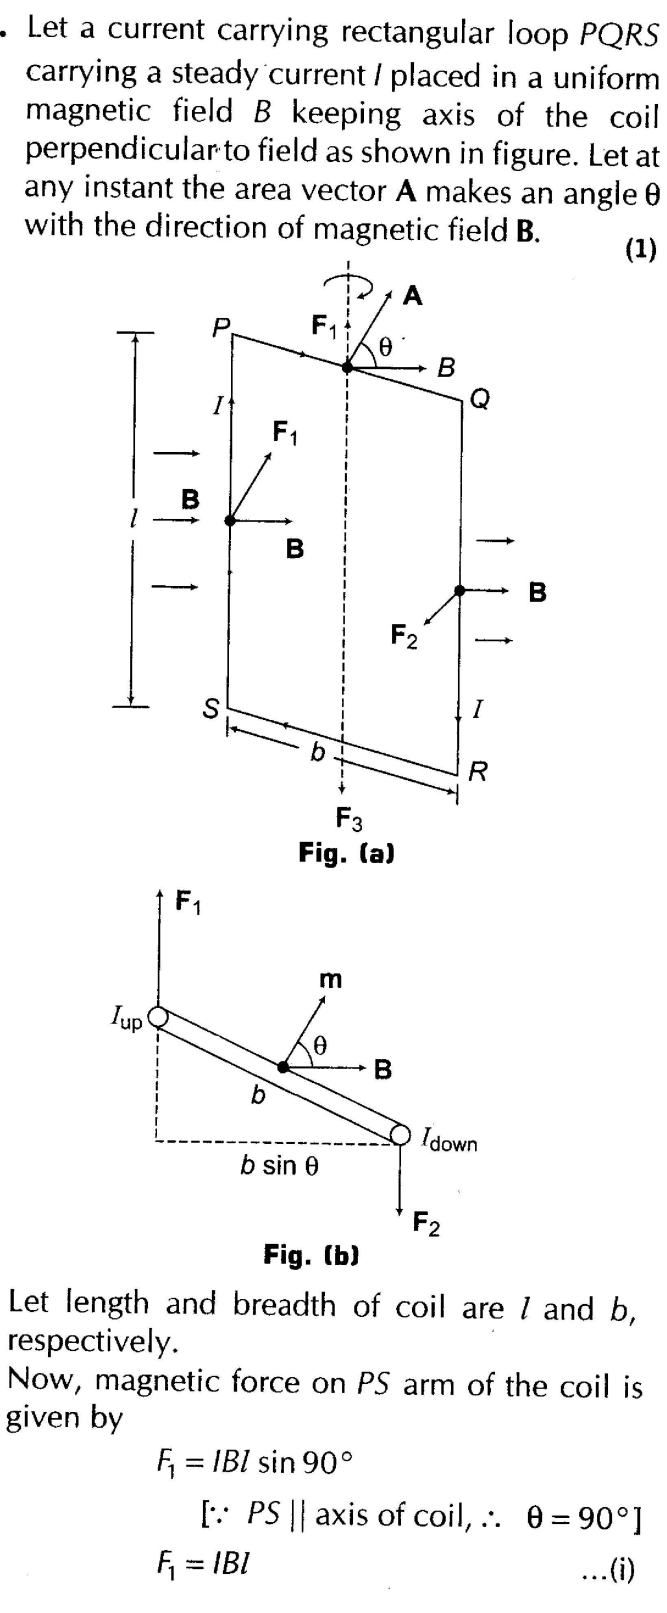 Moving Charges and Magnetism Important Questions for CBSE Class 12 Physics  Magnetic Force and Torque